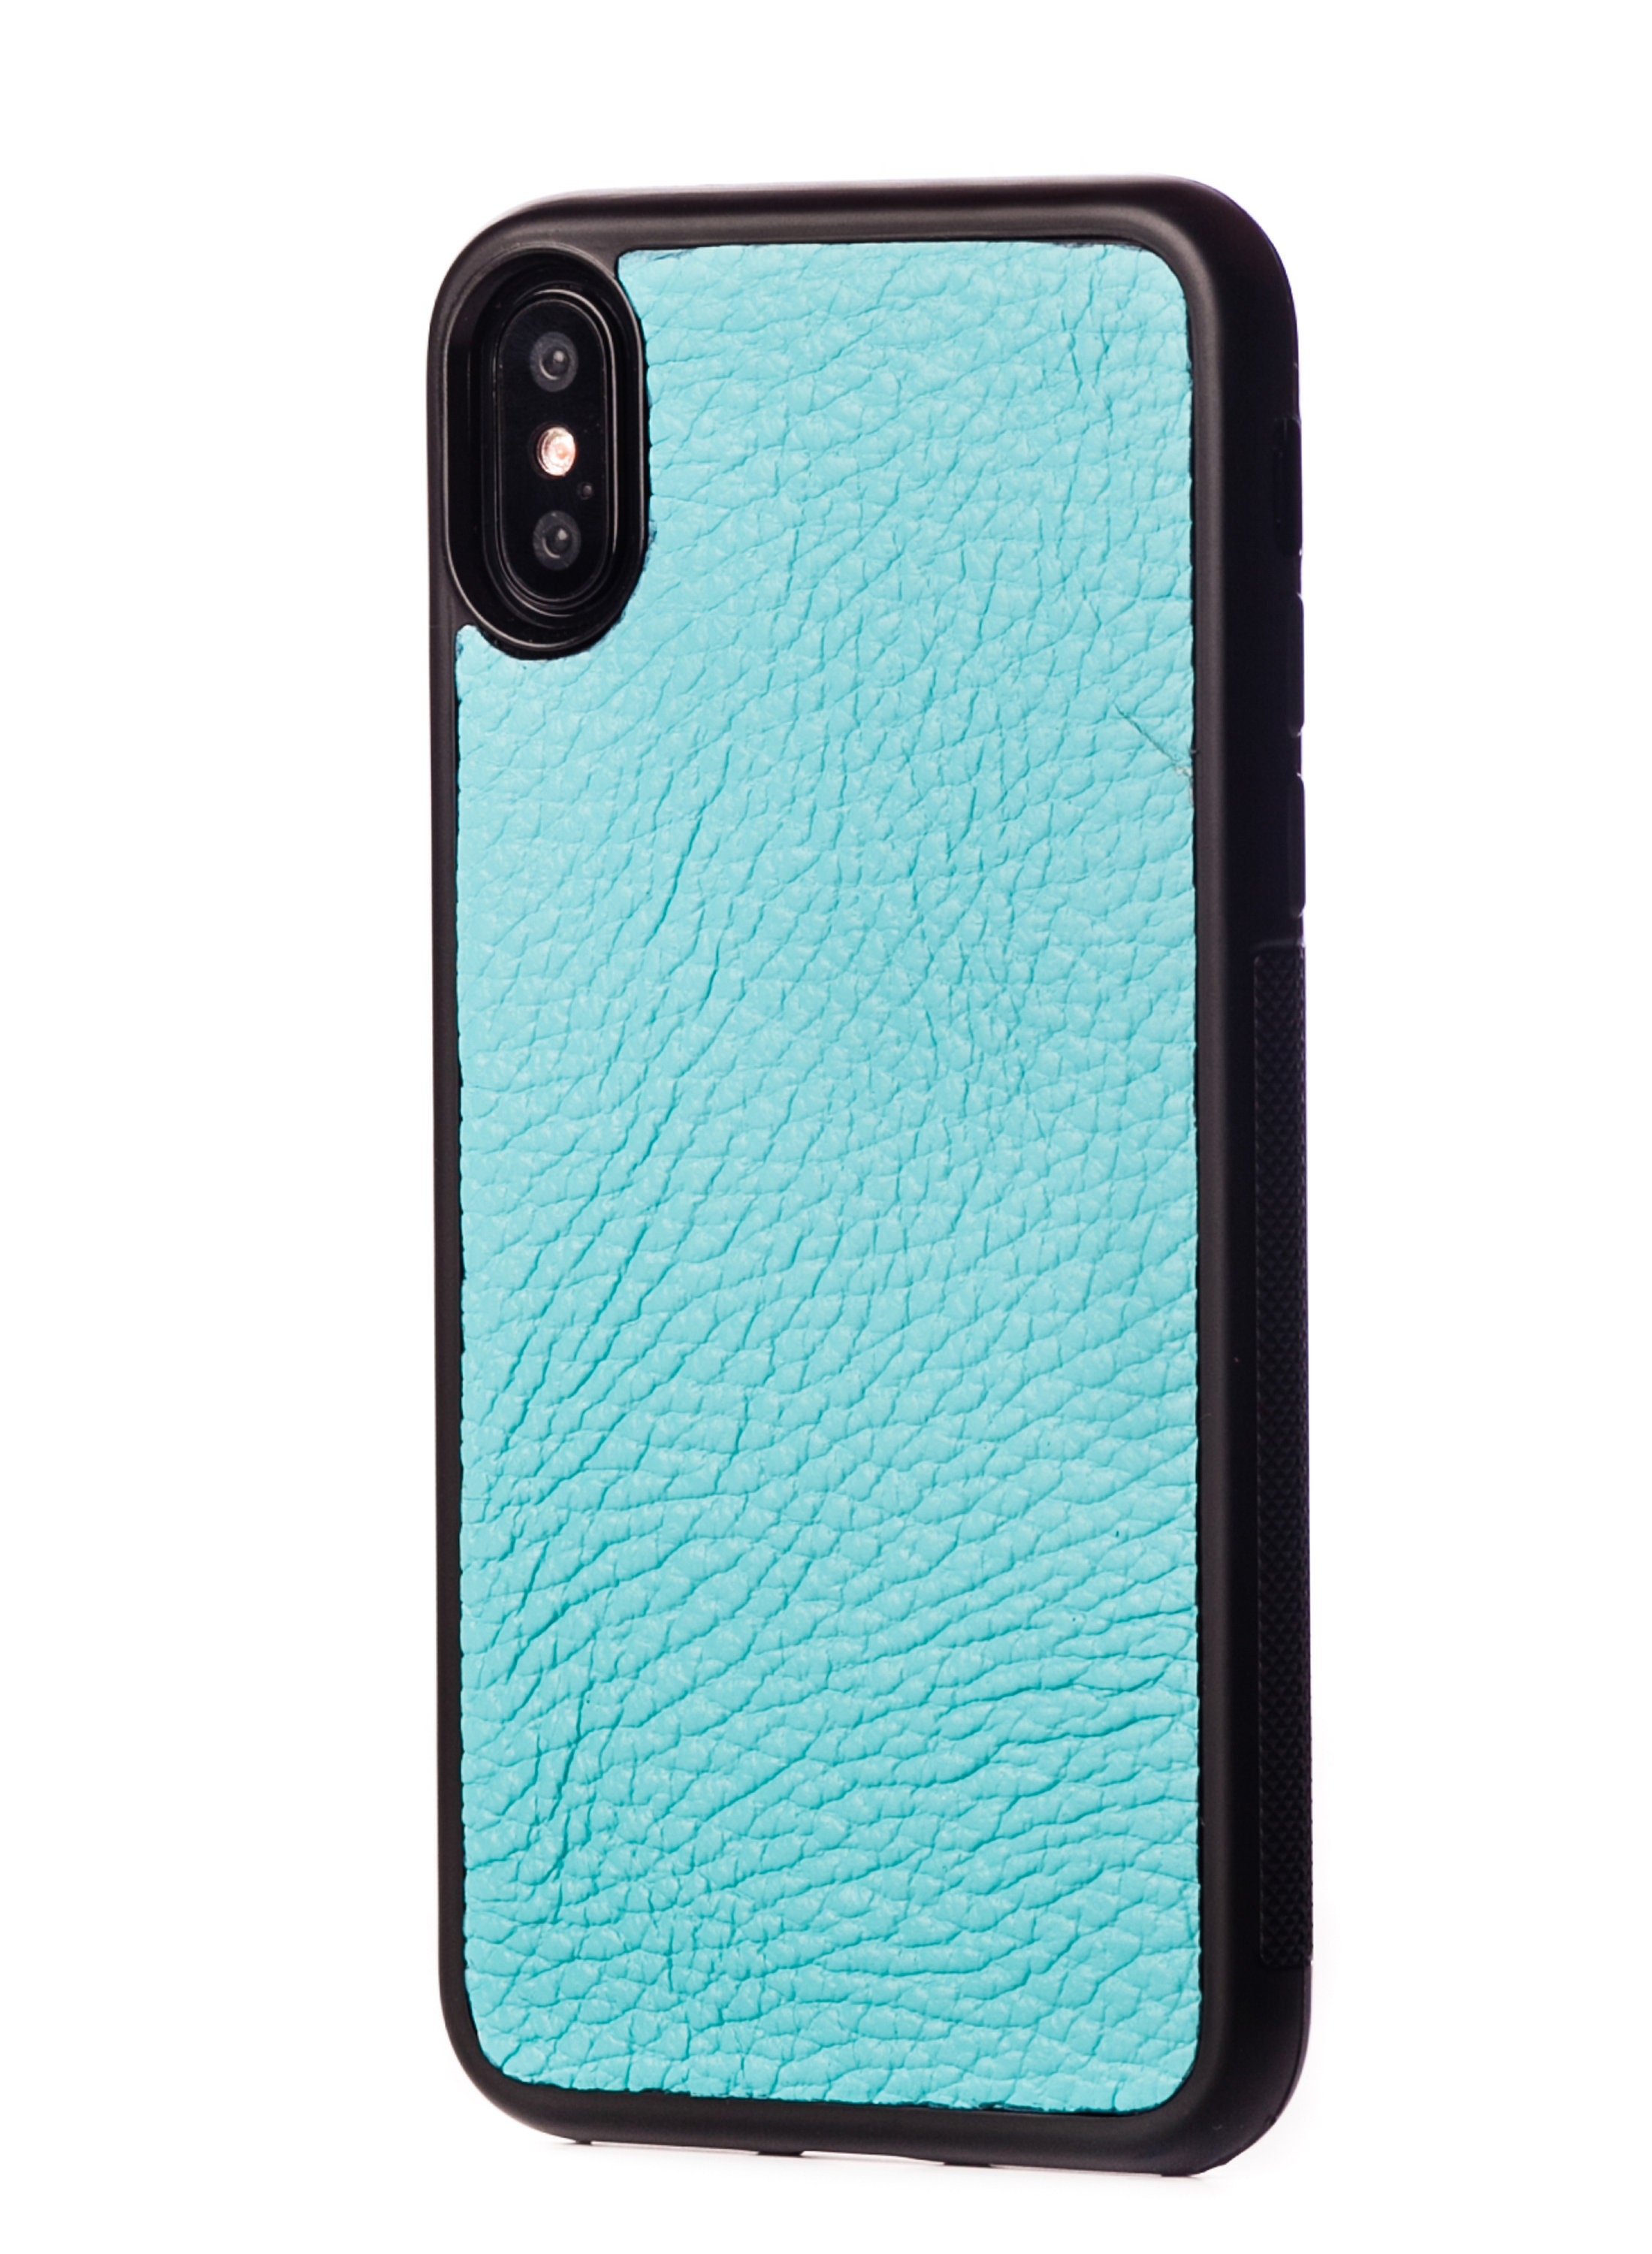 cheaper 2b8ed 1906f Tiffany Case with natural Cow Leather for iPhone X - iPhone X Leather Case  - iPhone X Cow Leather Case - iPhone Case X